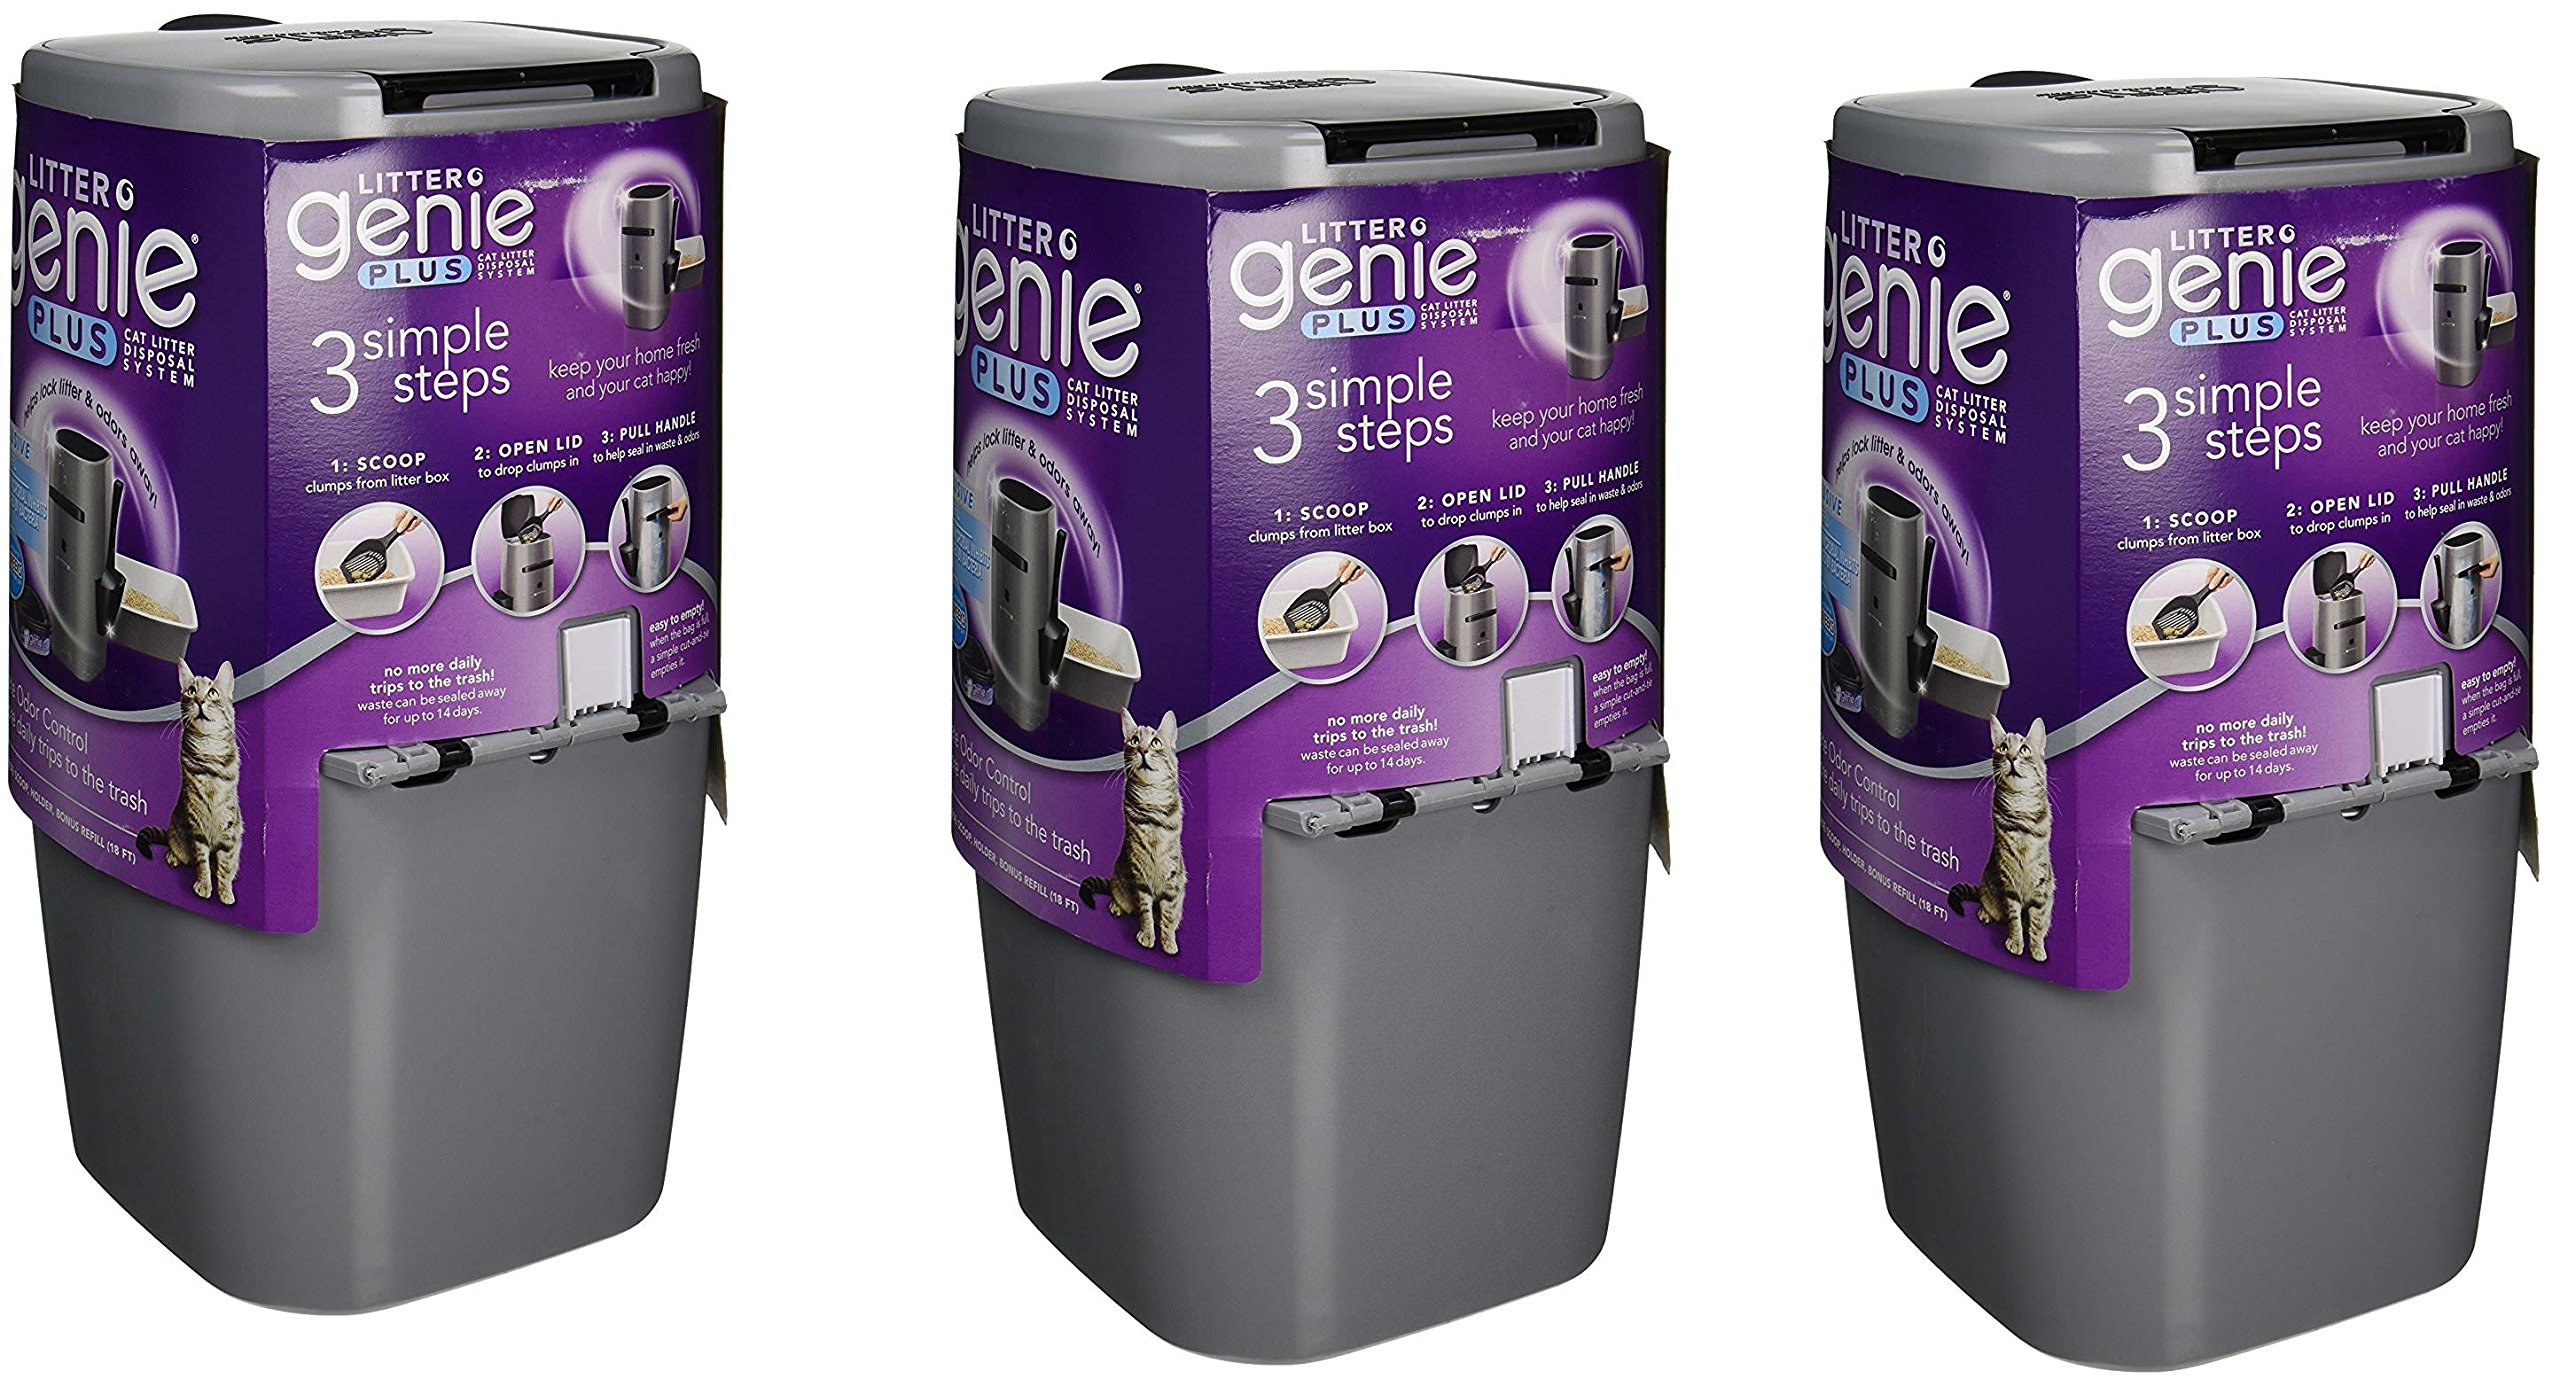 Litter Genie Plus Cat Litter Disposal System PZKmvC with Odor Free Pail System zHxFmz, 3 Pack(Silver)